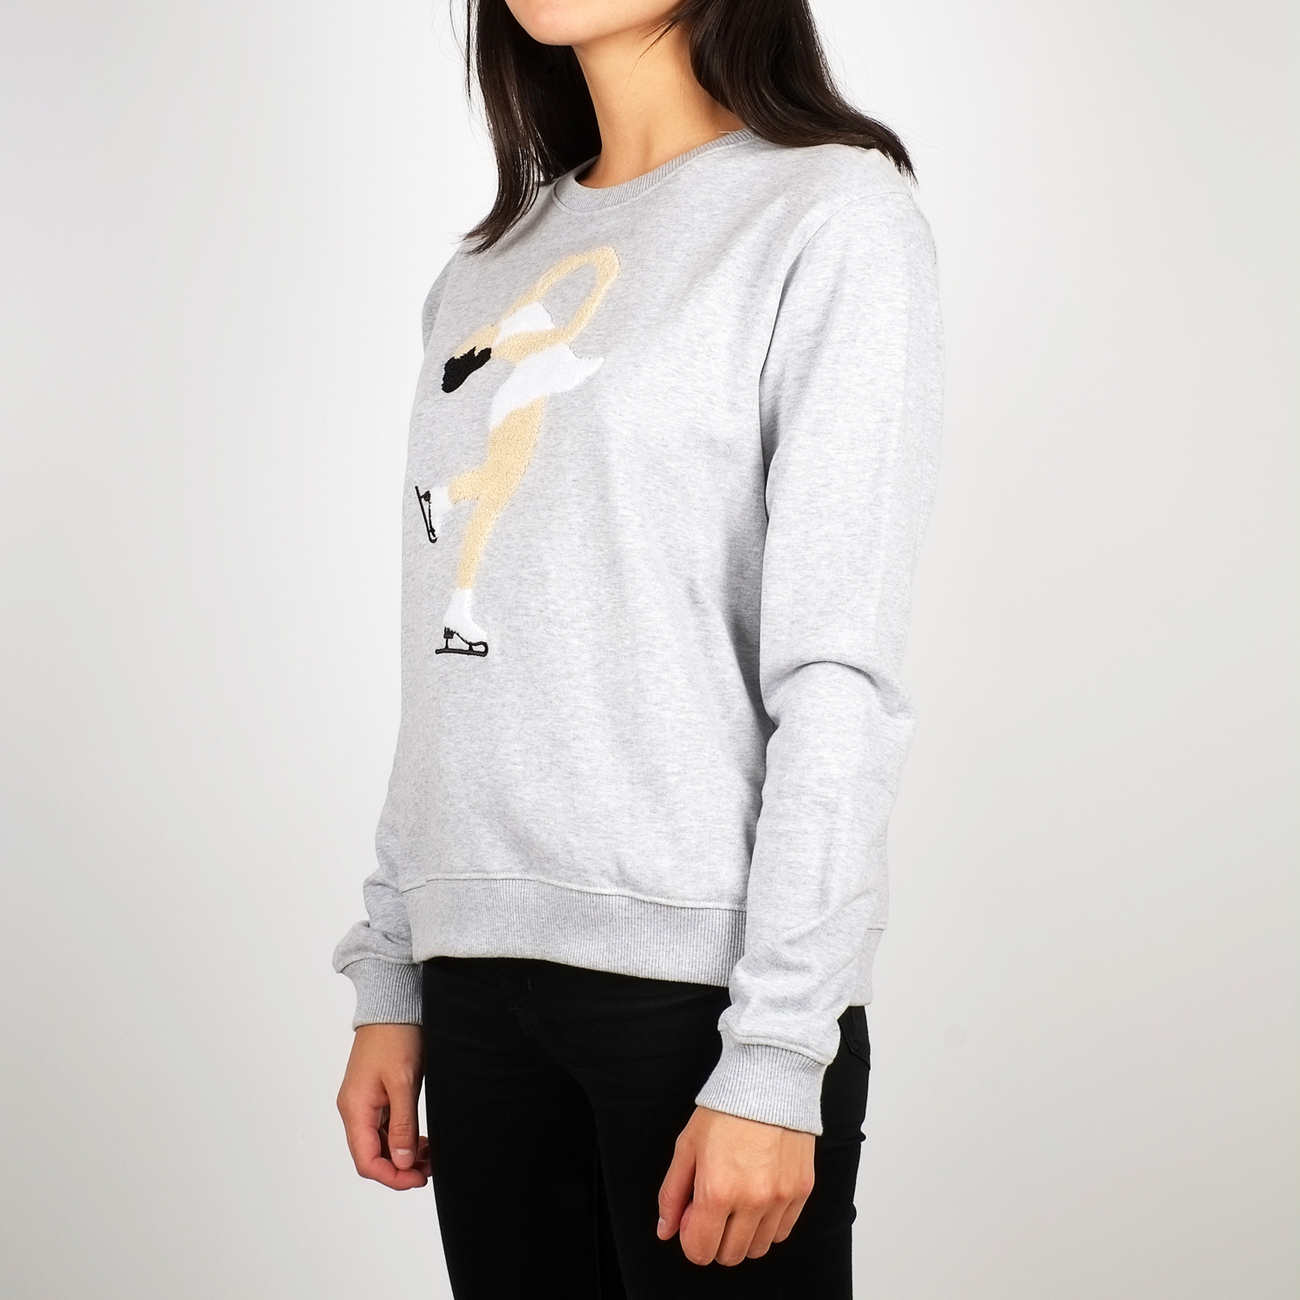 Sweatshirt Ystad Skating Queen Chenille